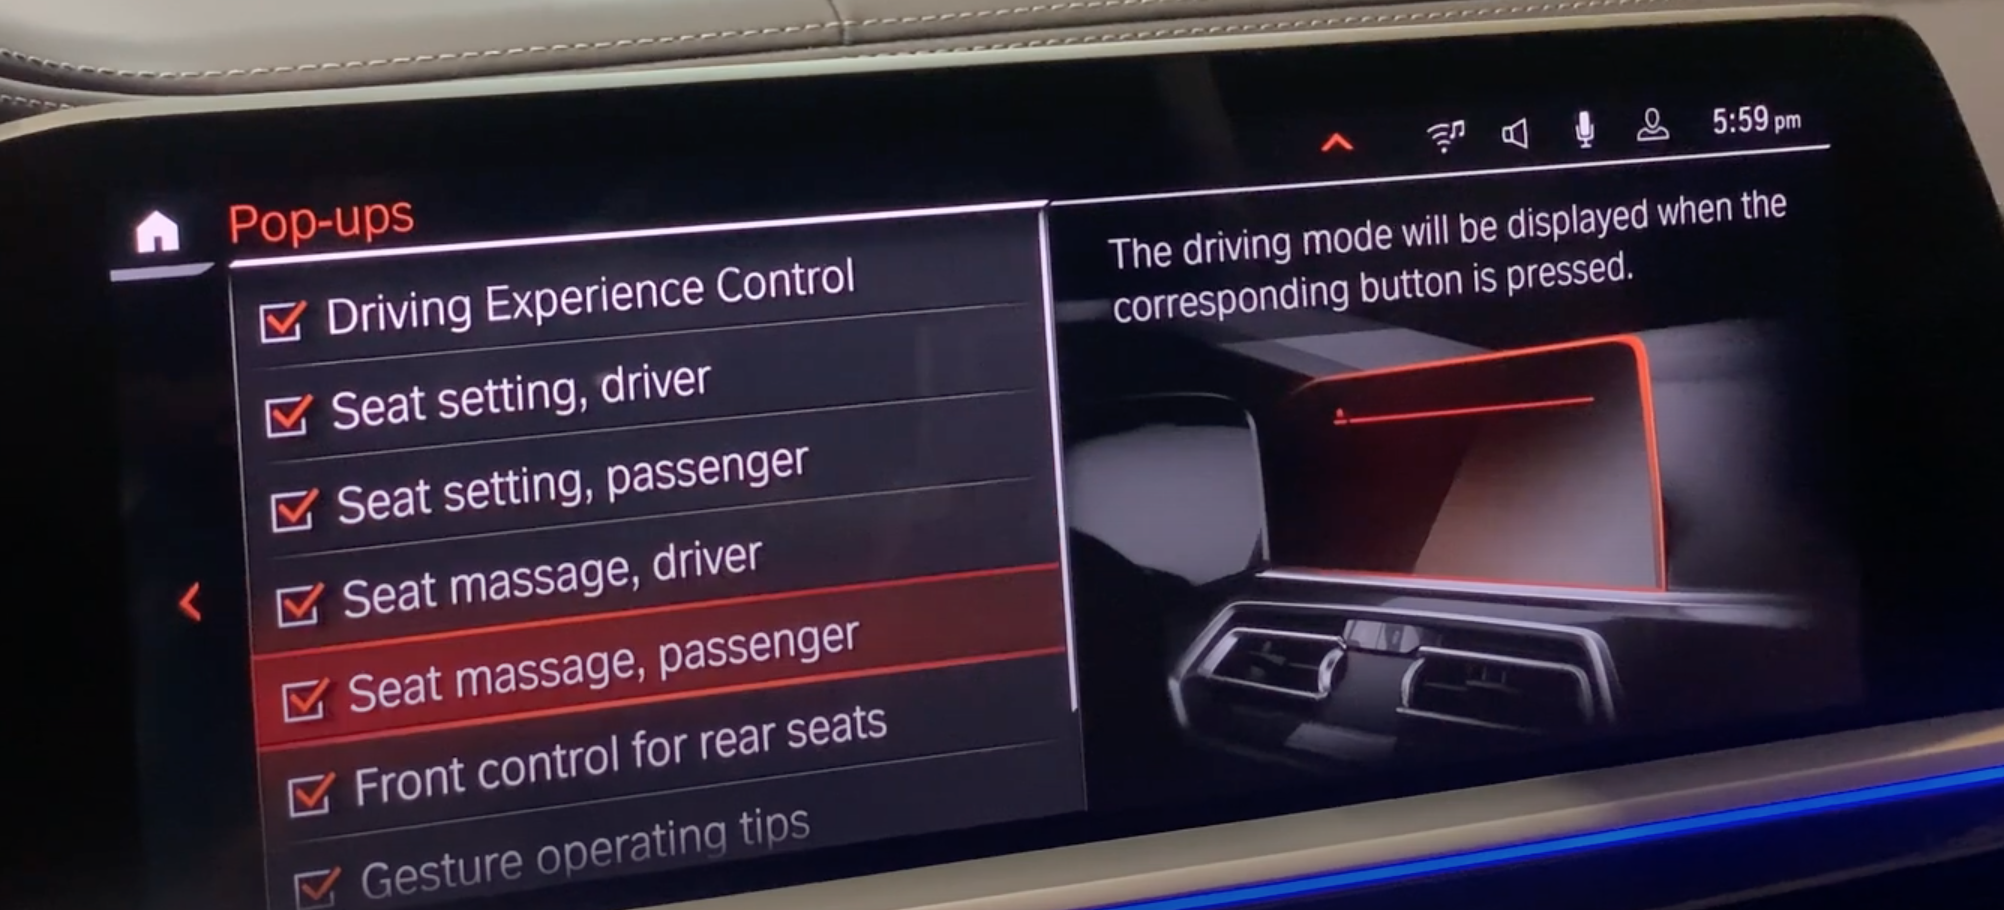 Turning on and off many features that a user desires to display on the infotainment screen